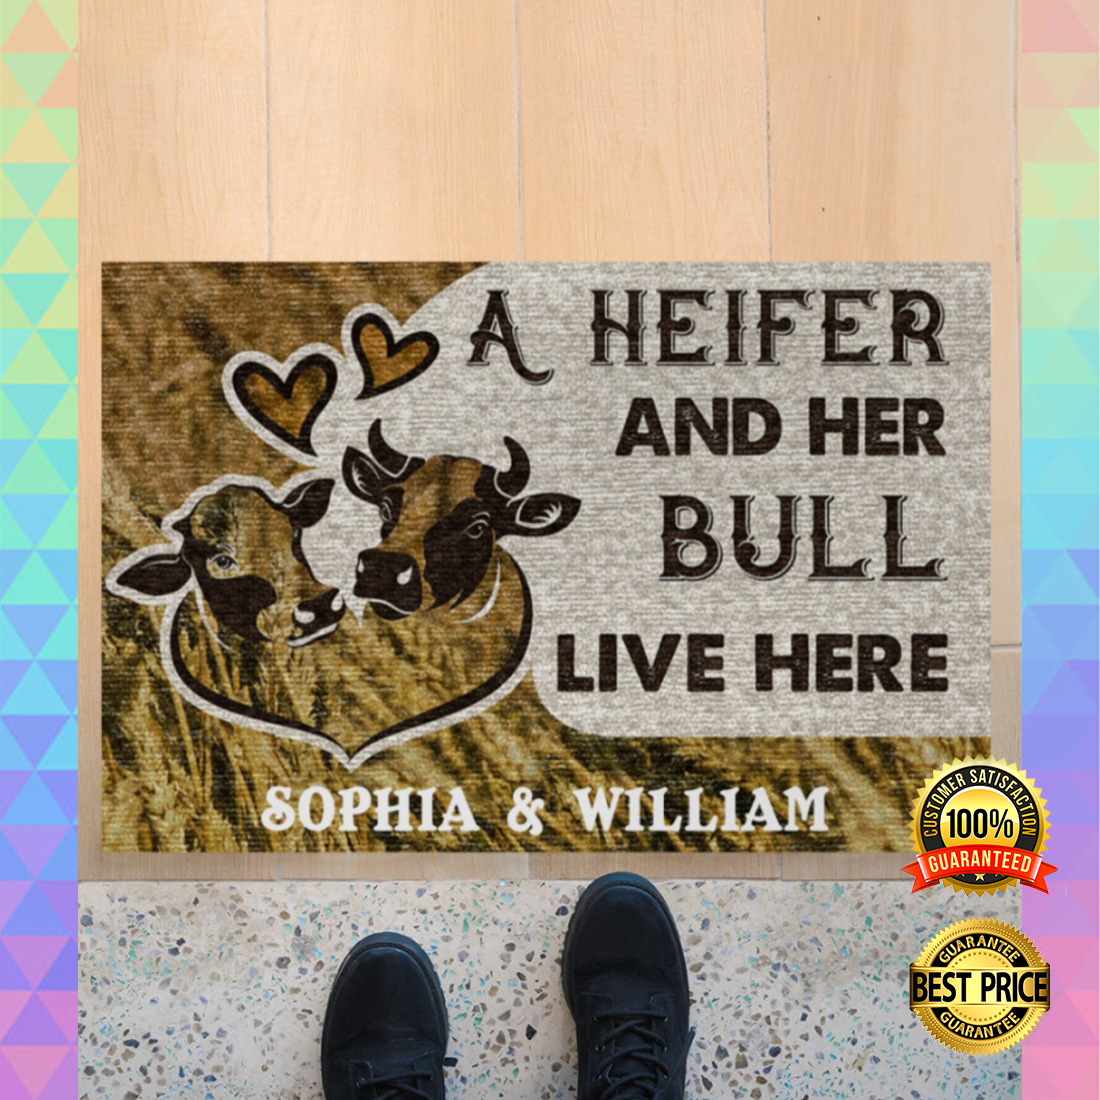 PERSONALIZED A HEIFER AND HER BULL LIVE HERE DOORMAT 7